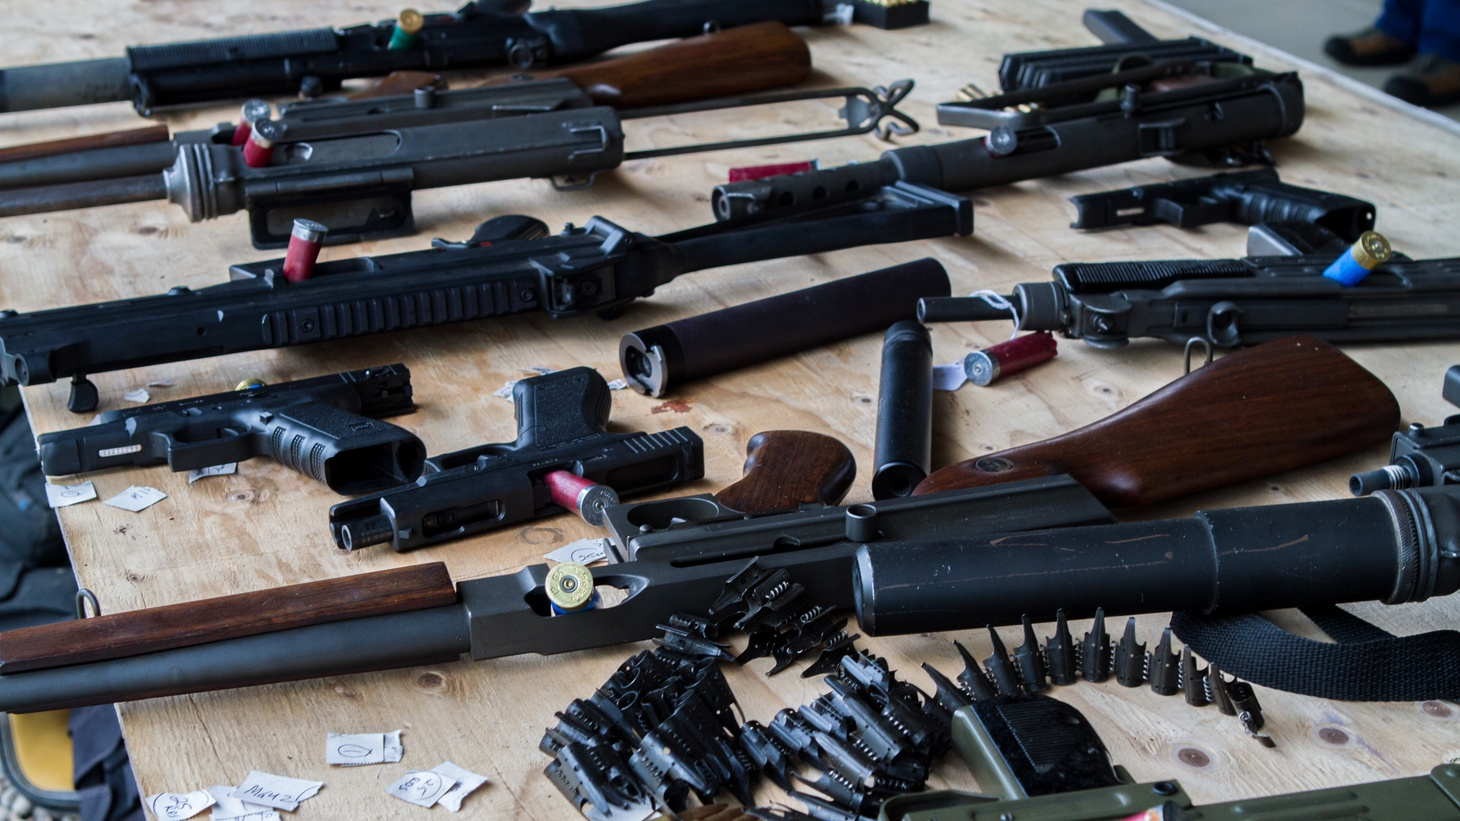 San Diego-based federal Judge Roger Benitez earlier this month threw out California's decades-old assault weapons ban. Officials have filed an appeal.